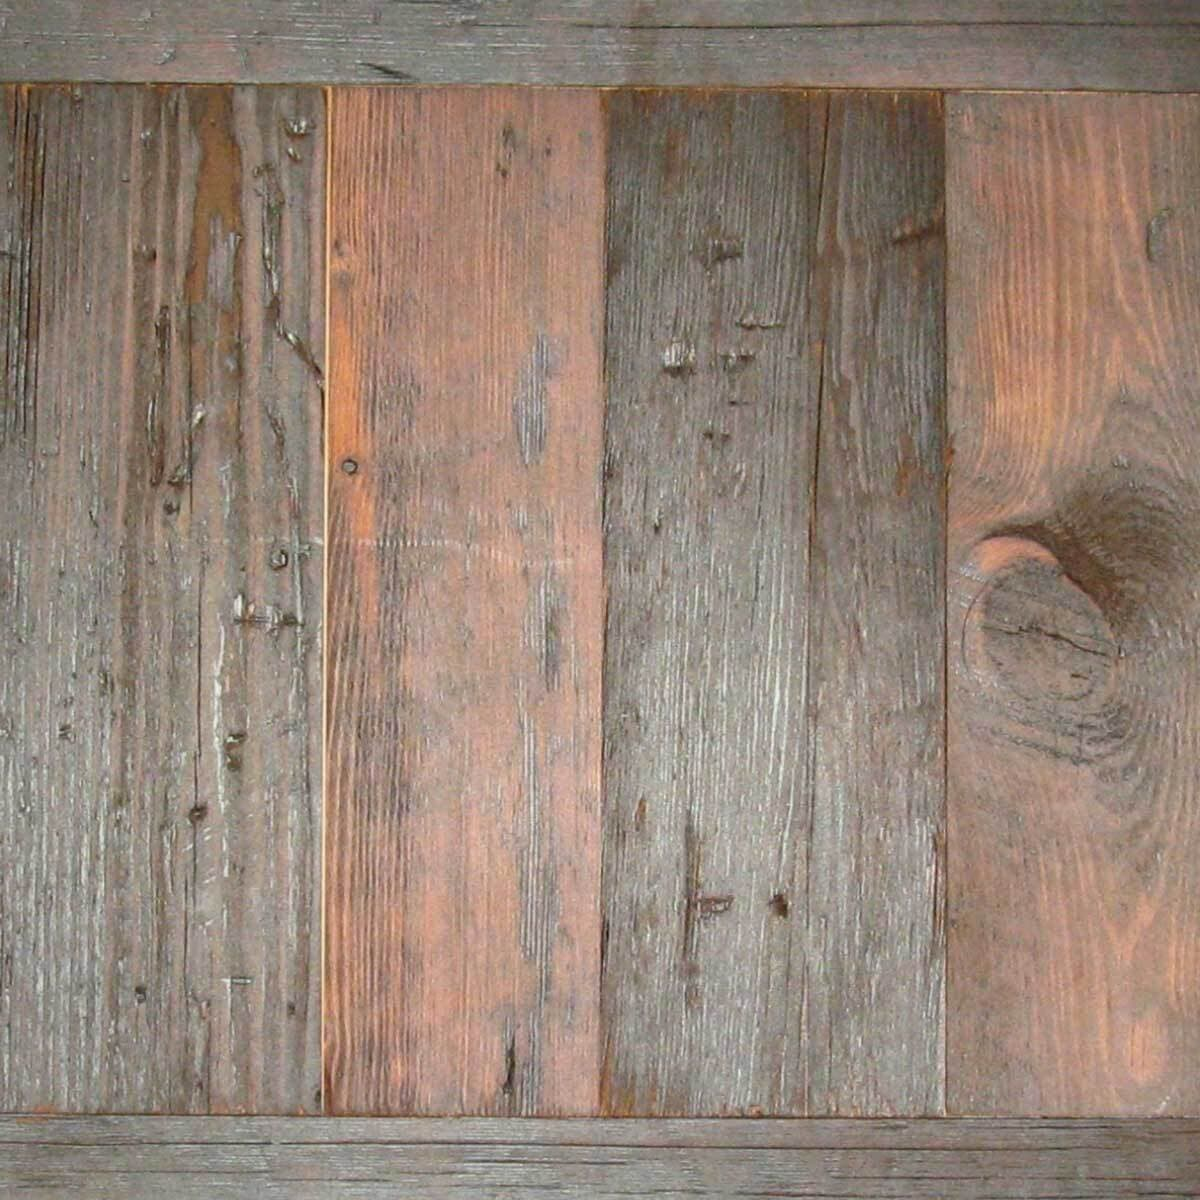 Rhode Island Brown Character Heart Pine finish by whole log lumber